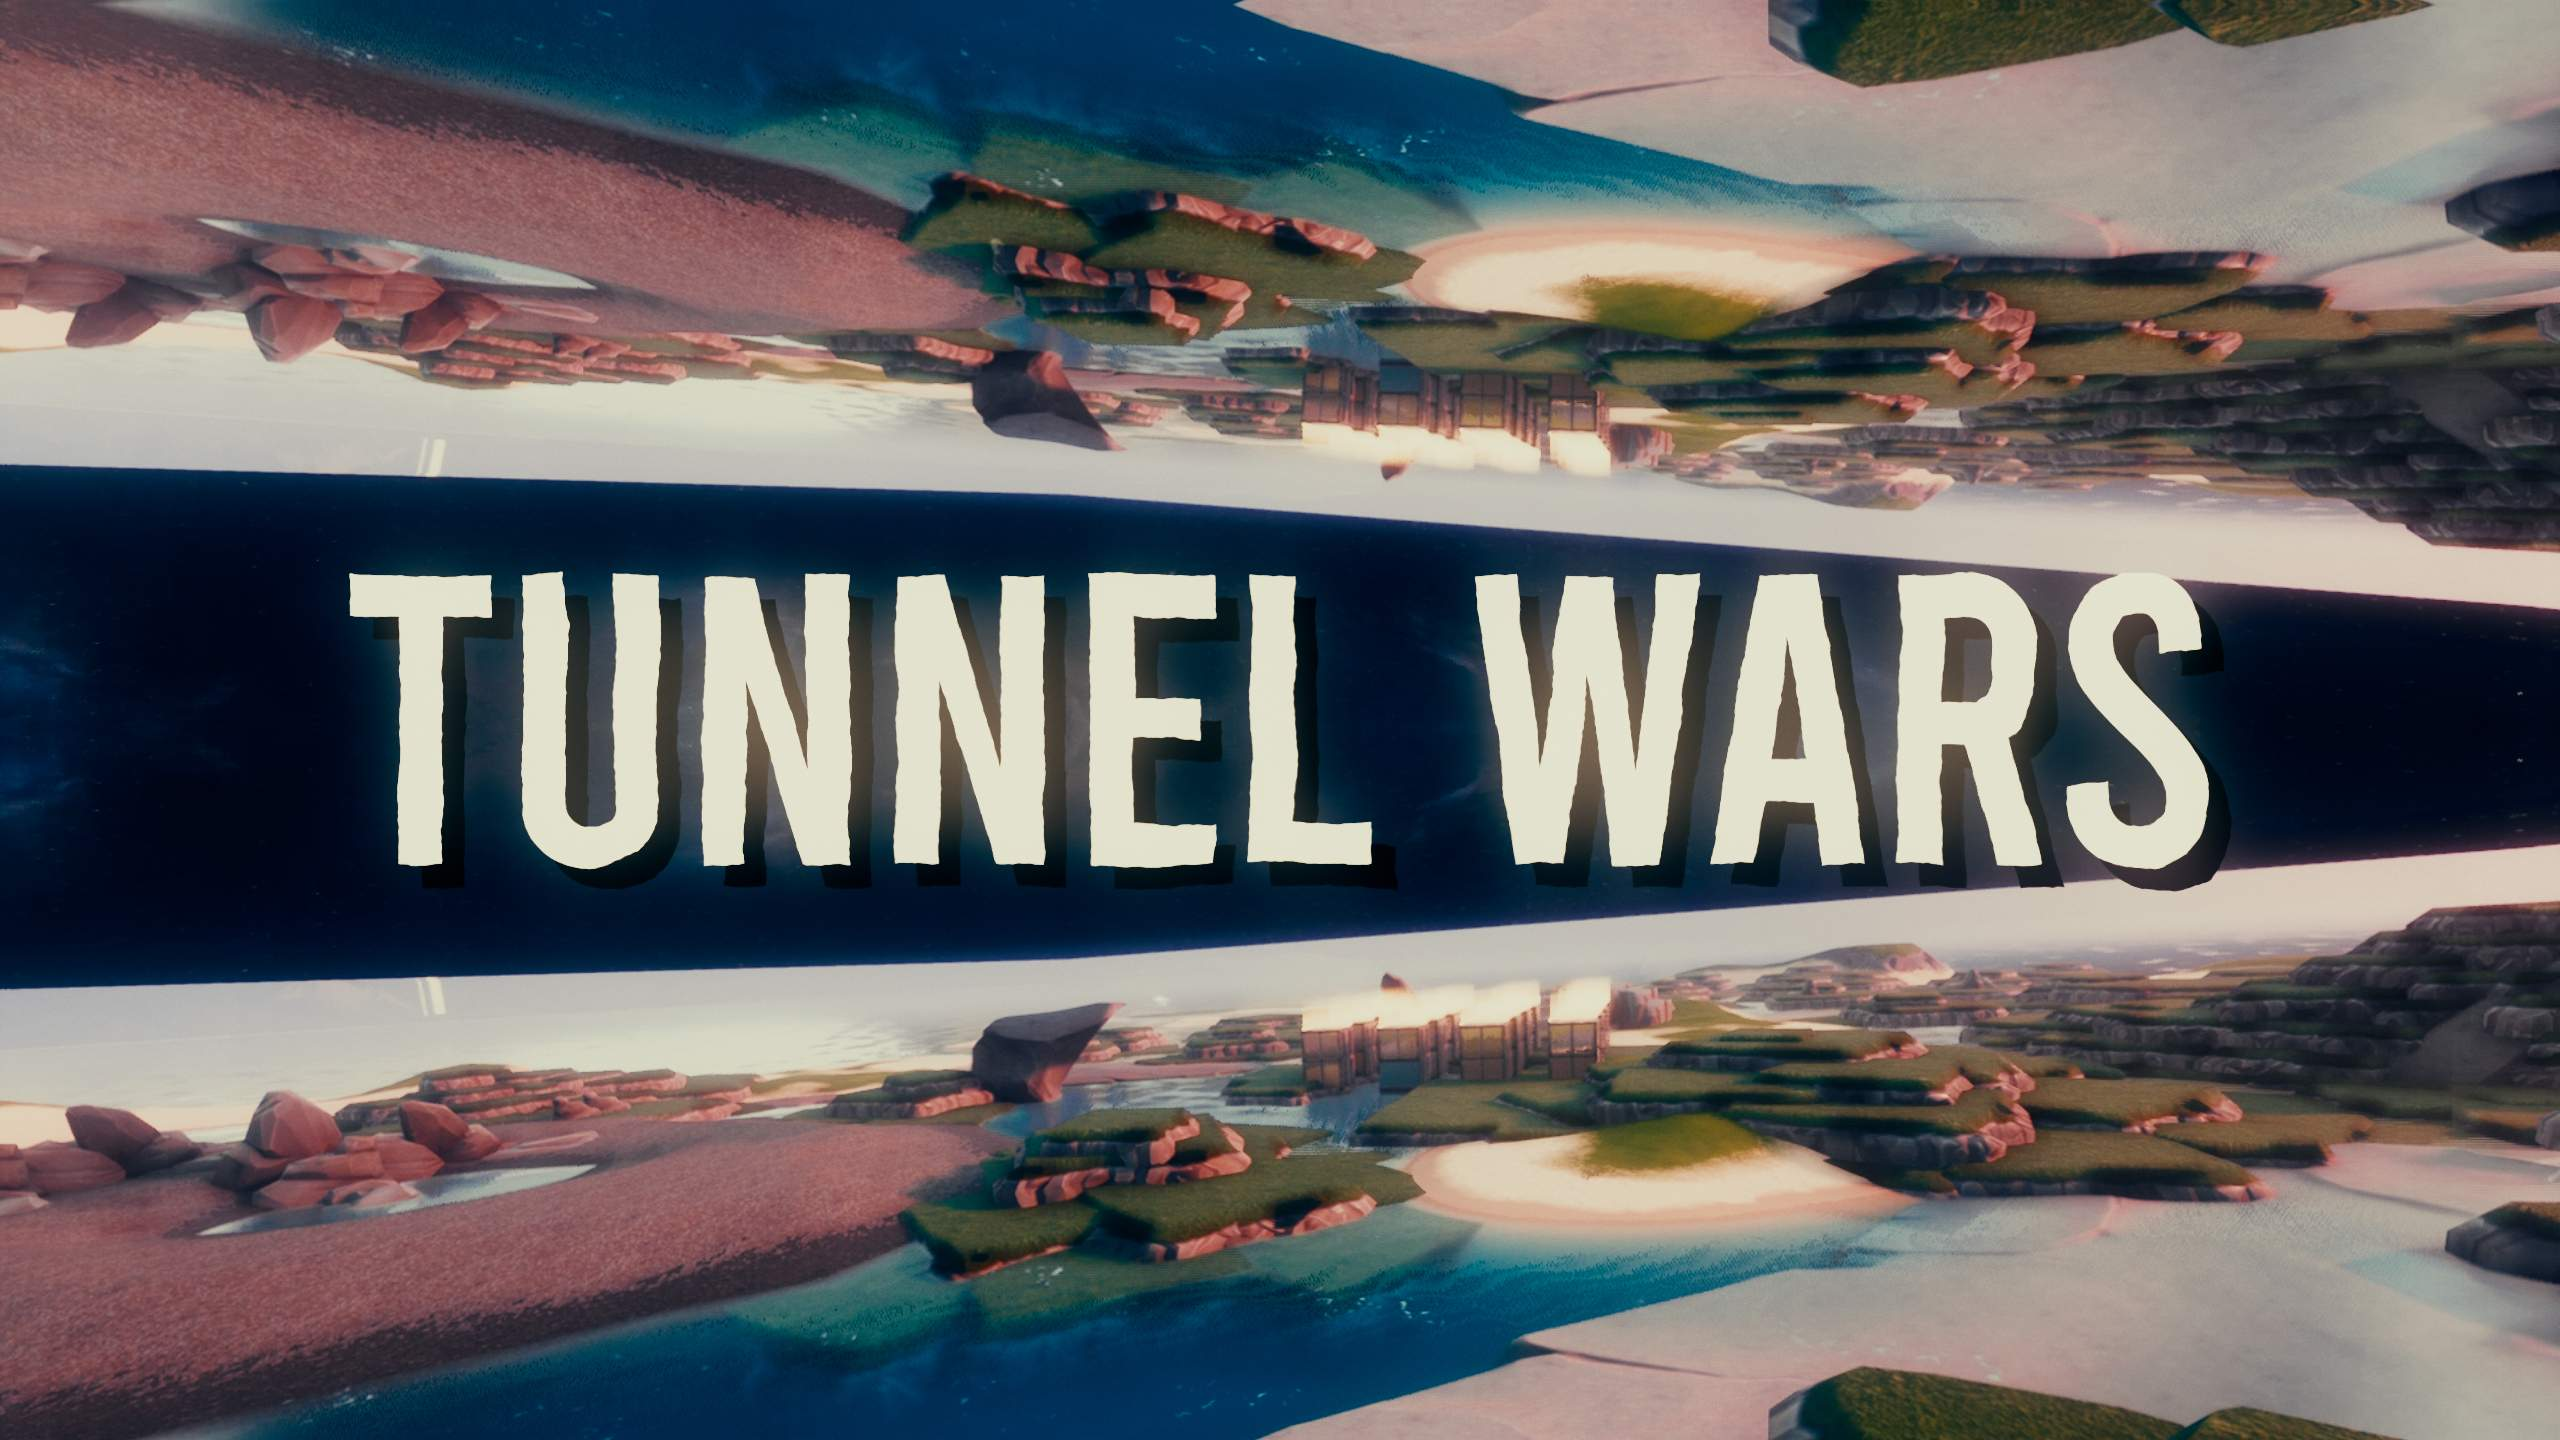 7RIBE ALL IN ONE TUNNEL WARS